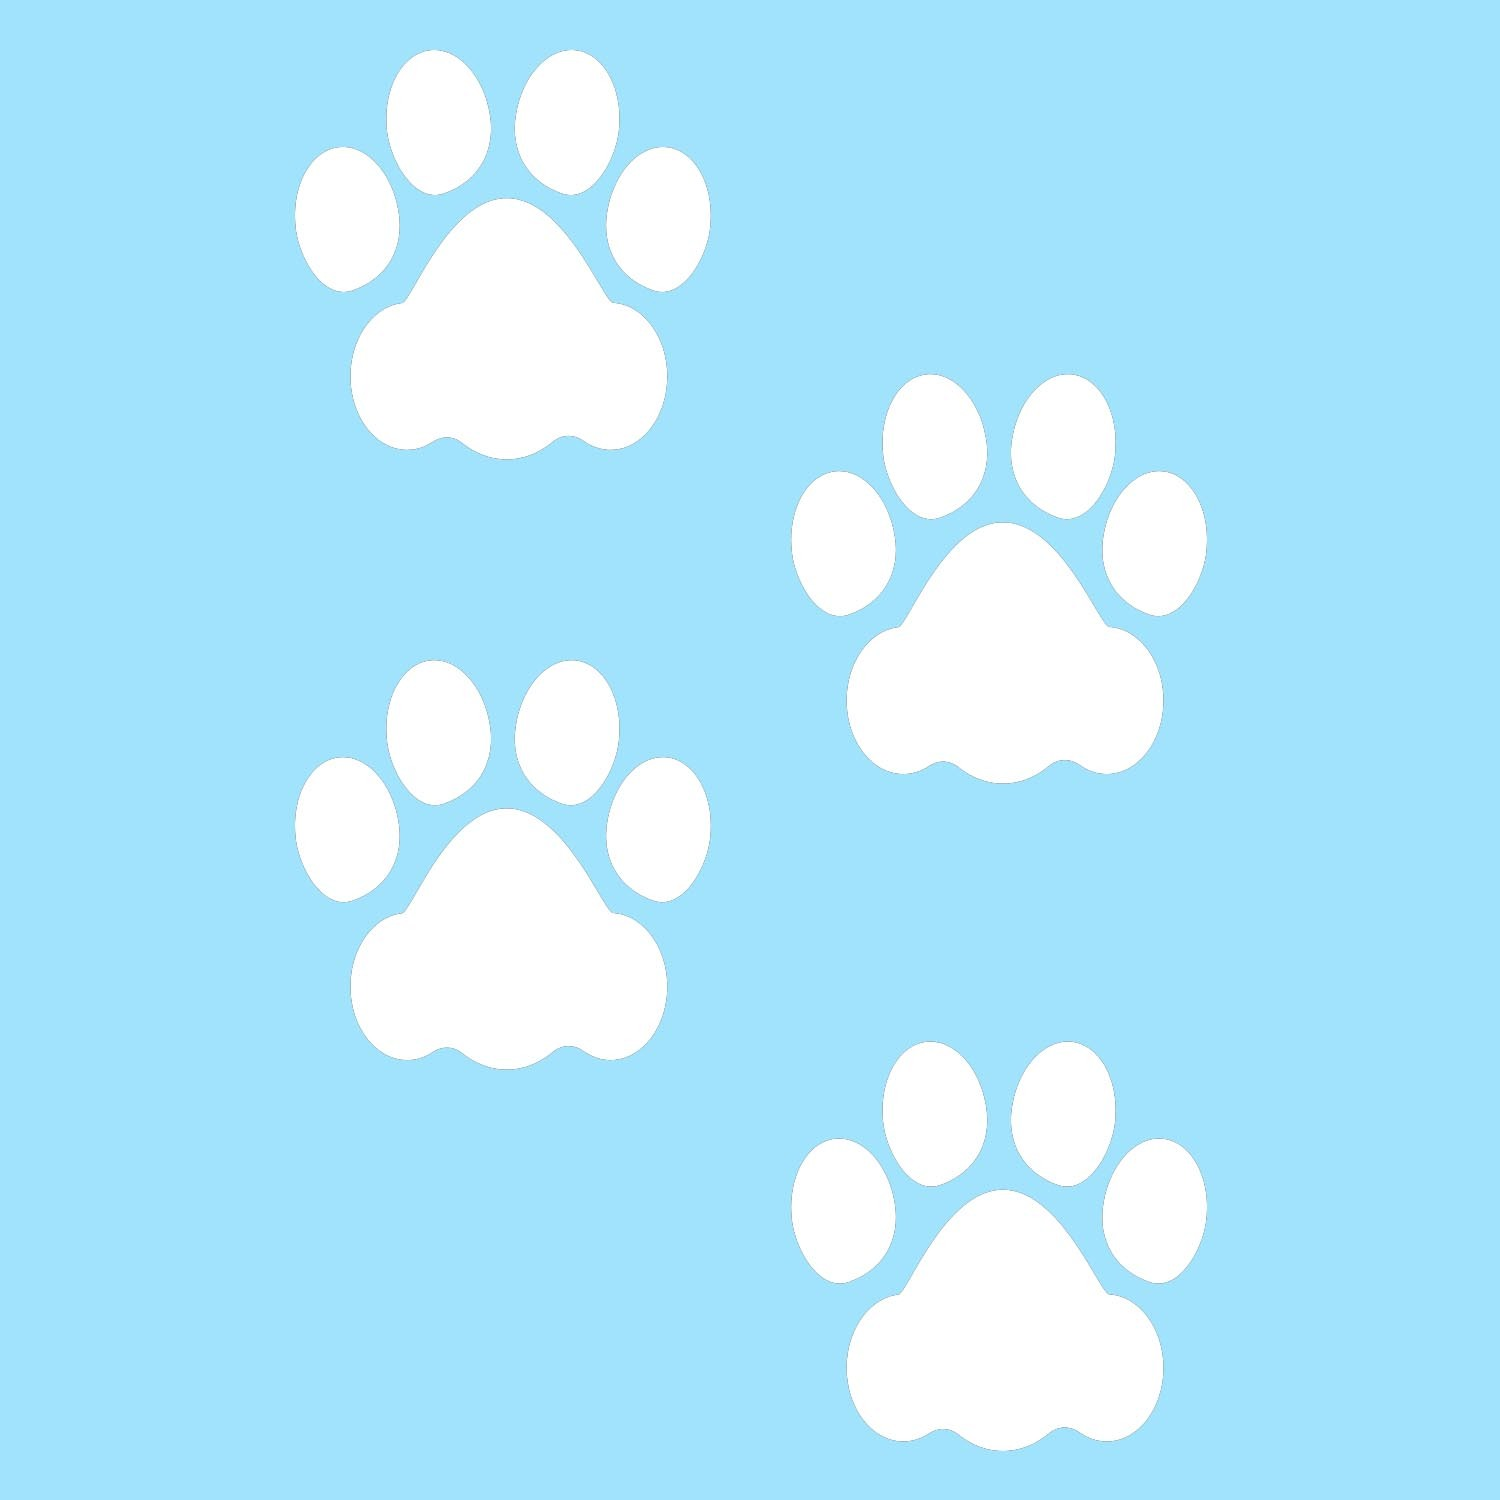 LiteMark 3 Inch White Removable Dog Paw Prints - Pack of 48 image 1